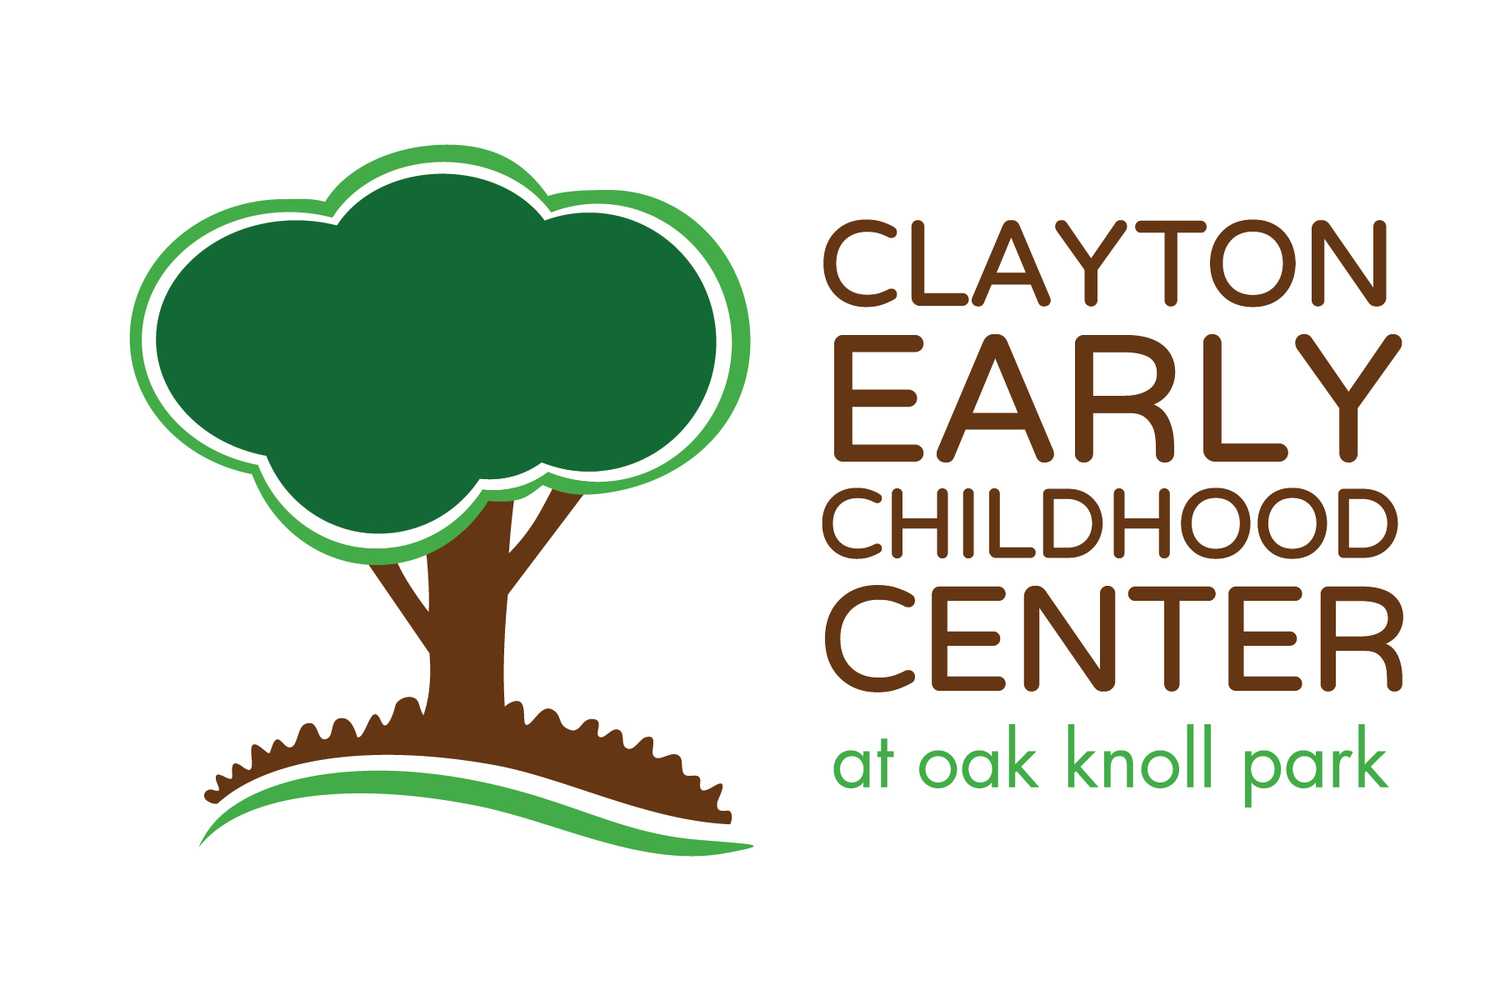 Clayton Early Childhood Center